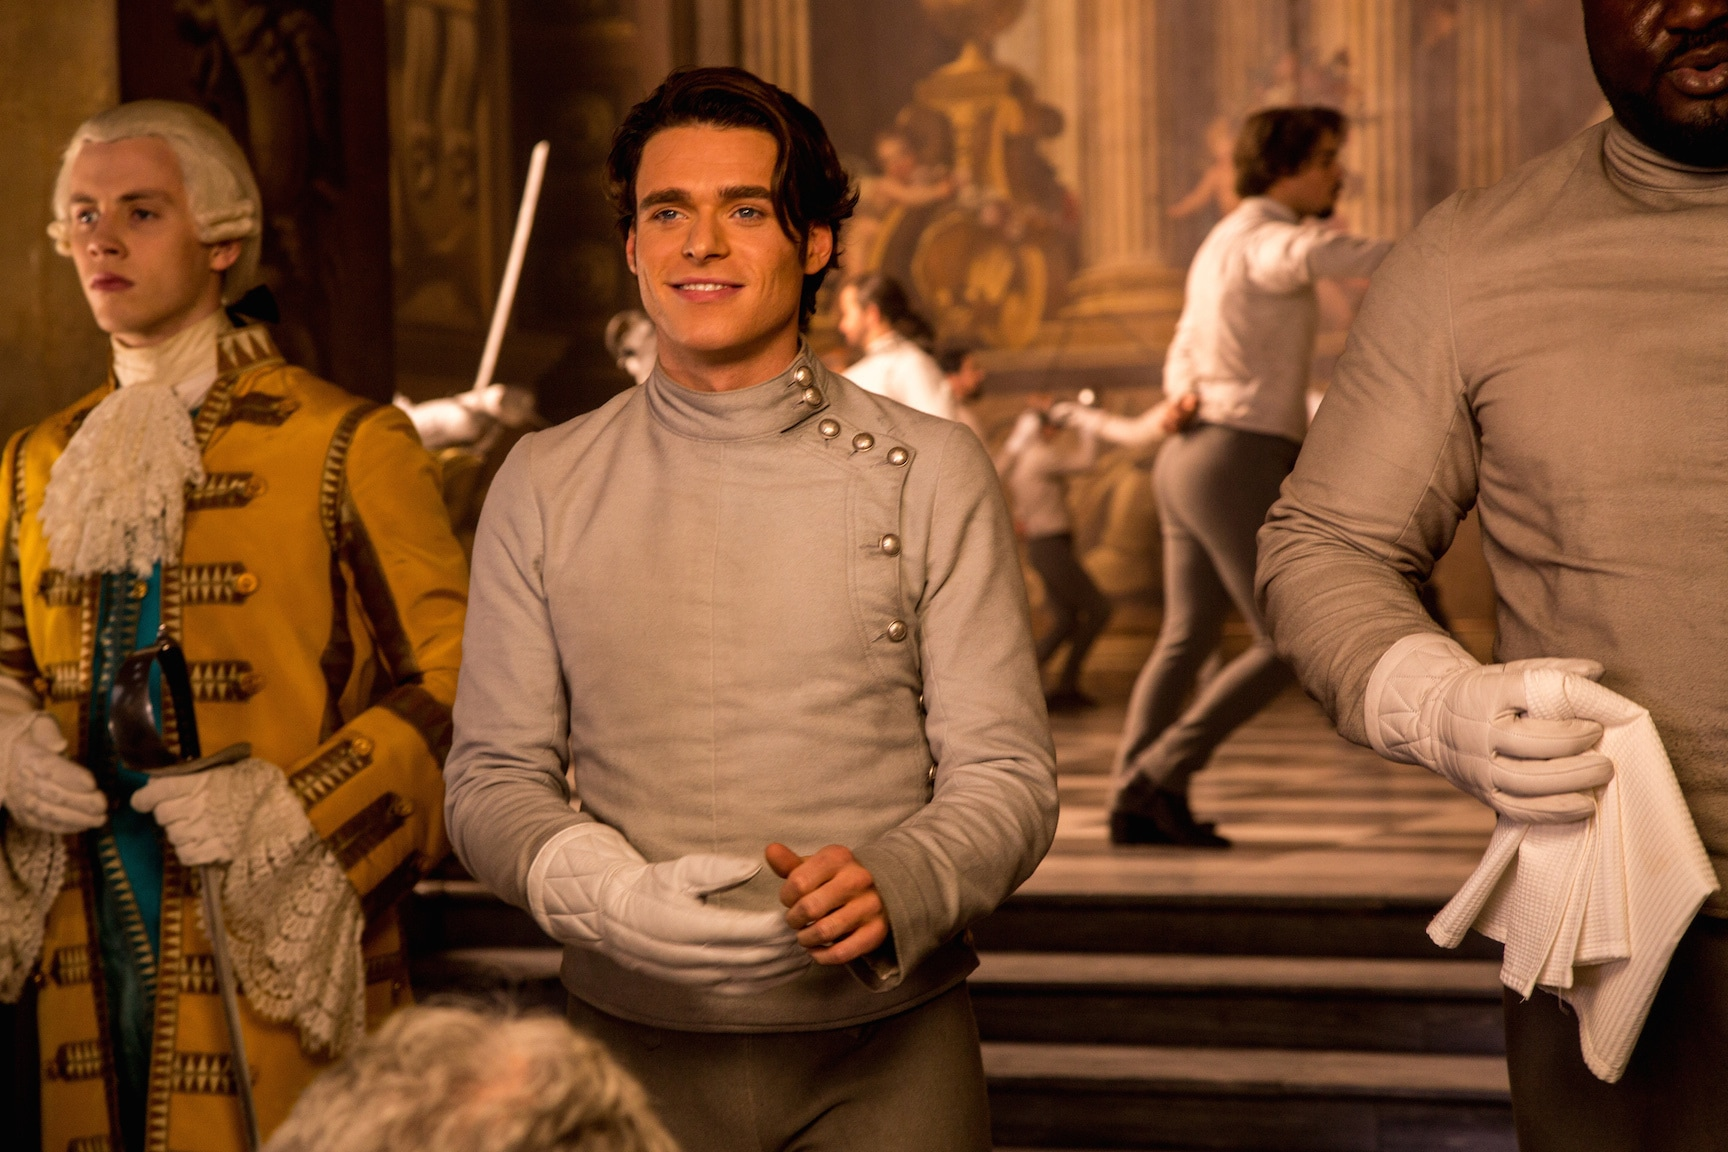 Actor Richard Madden (as the Prince) in the movie Cinderella.